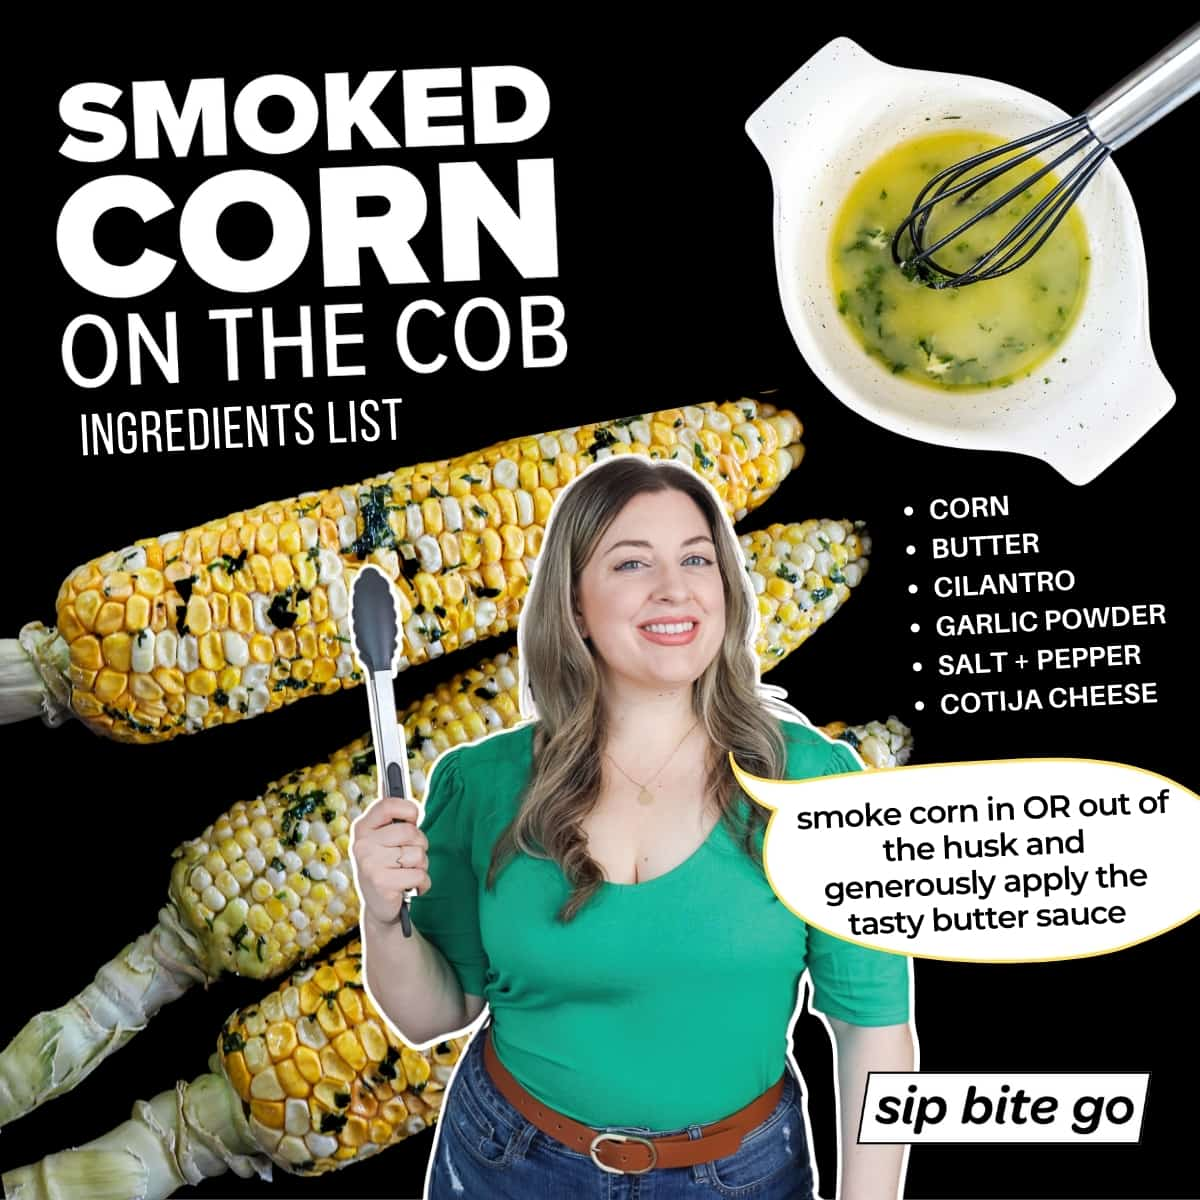 Infographic of smoked corn on the cob ingredients list